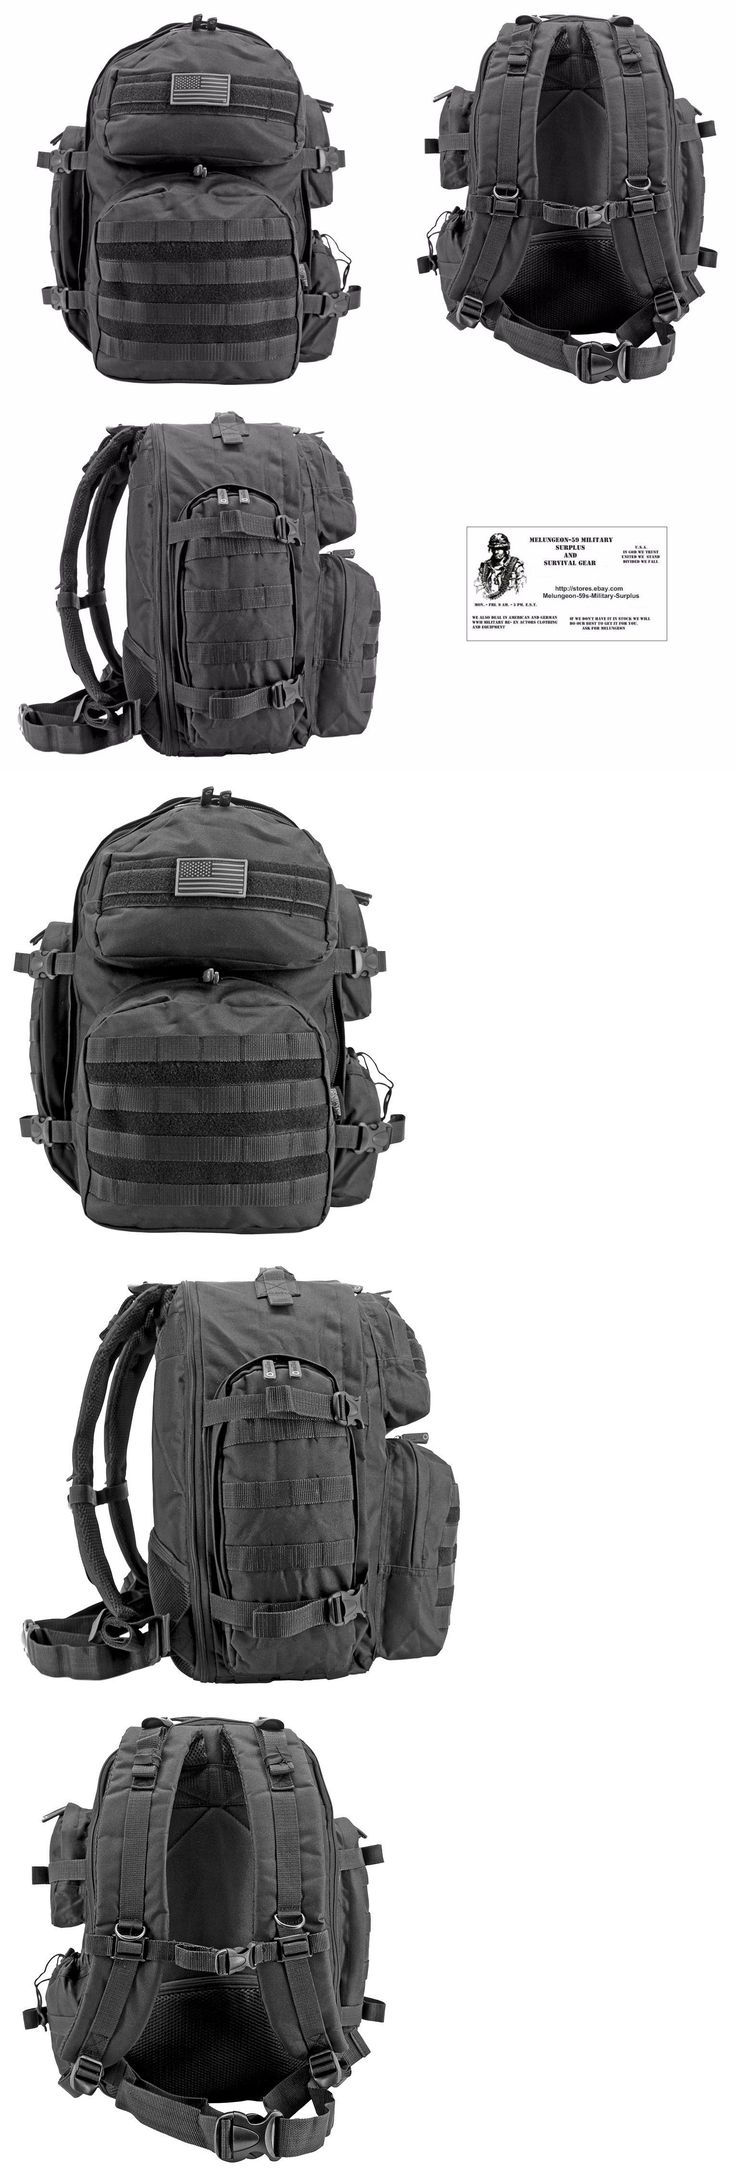 Other Emergency Gear 181415: Molle Tactical Elite Backpack B.O.B. Tactical Military Survival - Black -> BUY IT NOW ONLY: $45.99 on eBay!